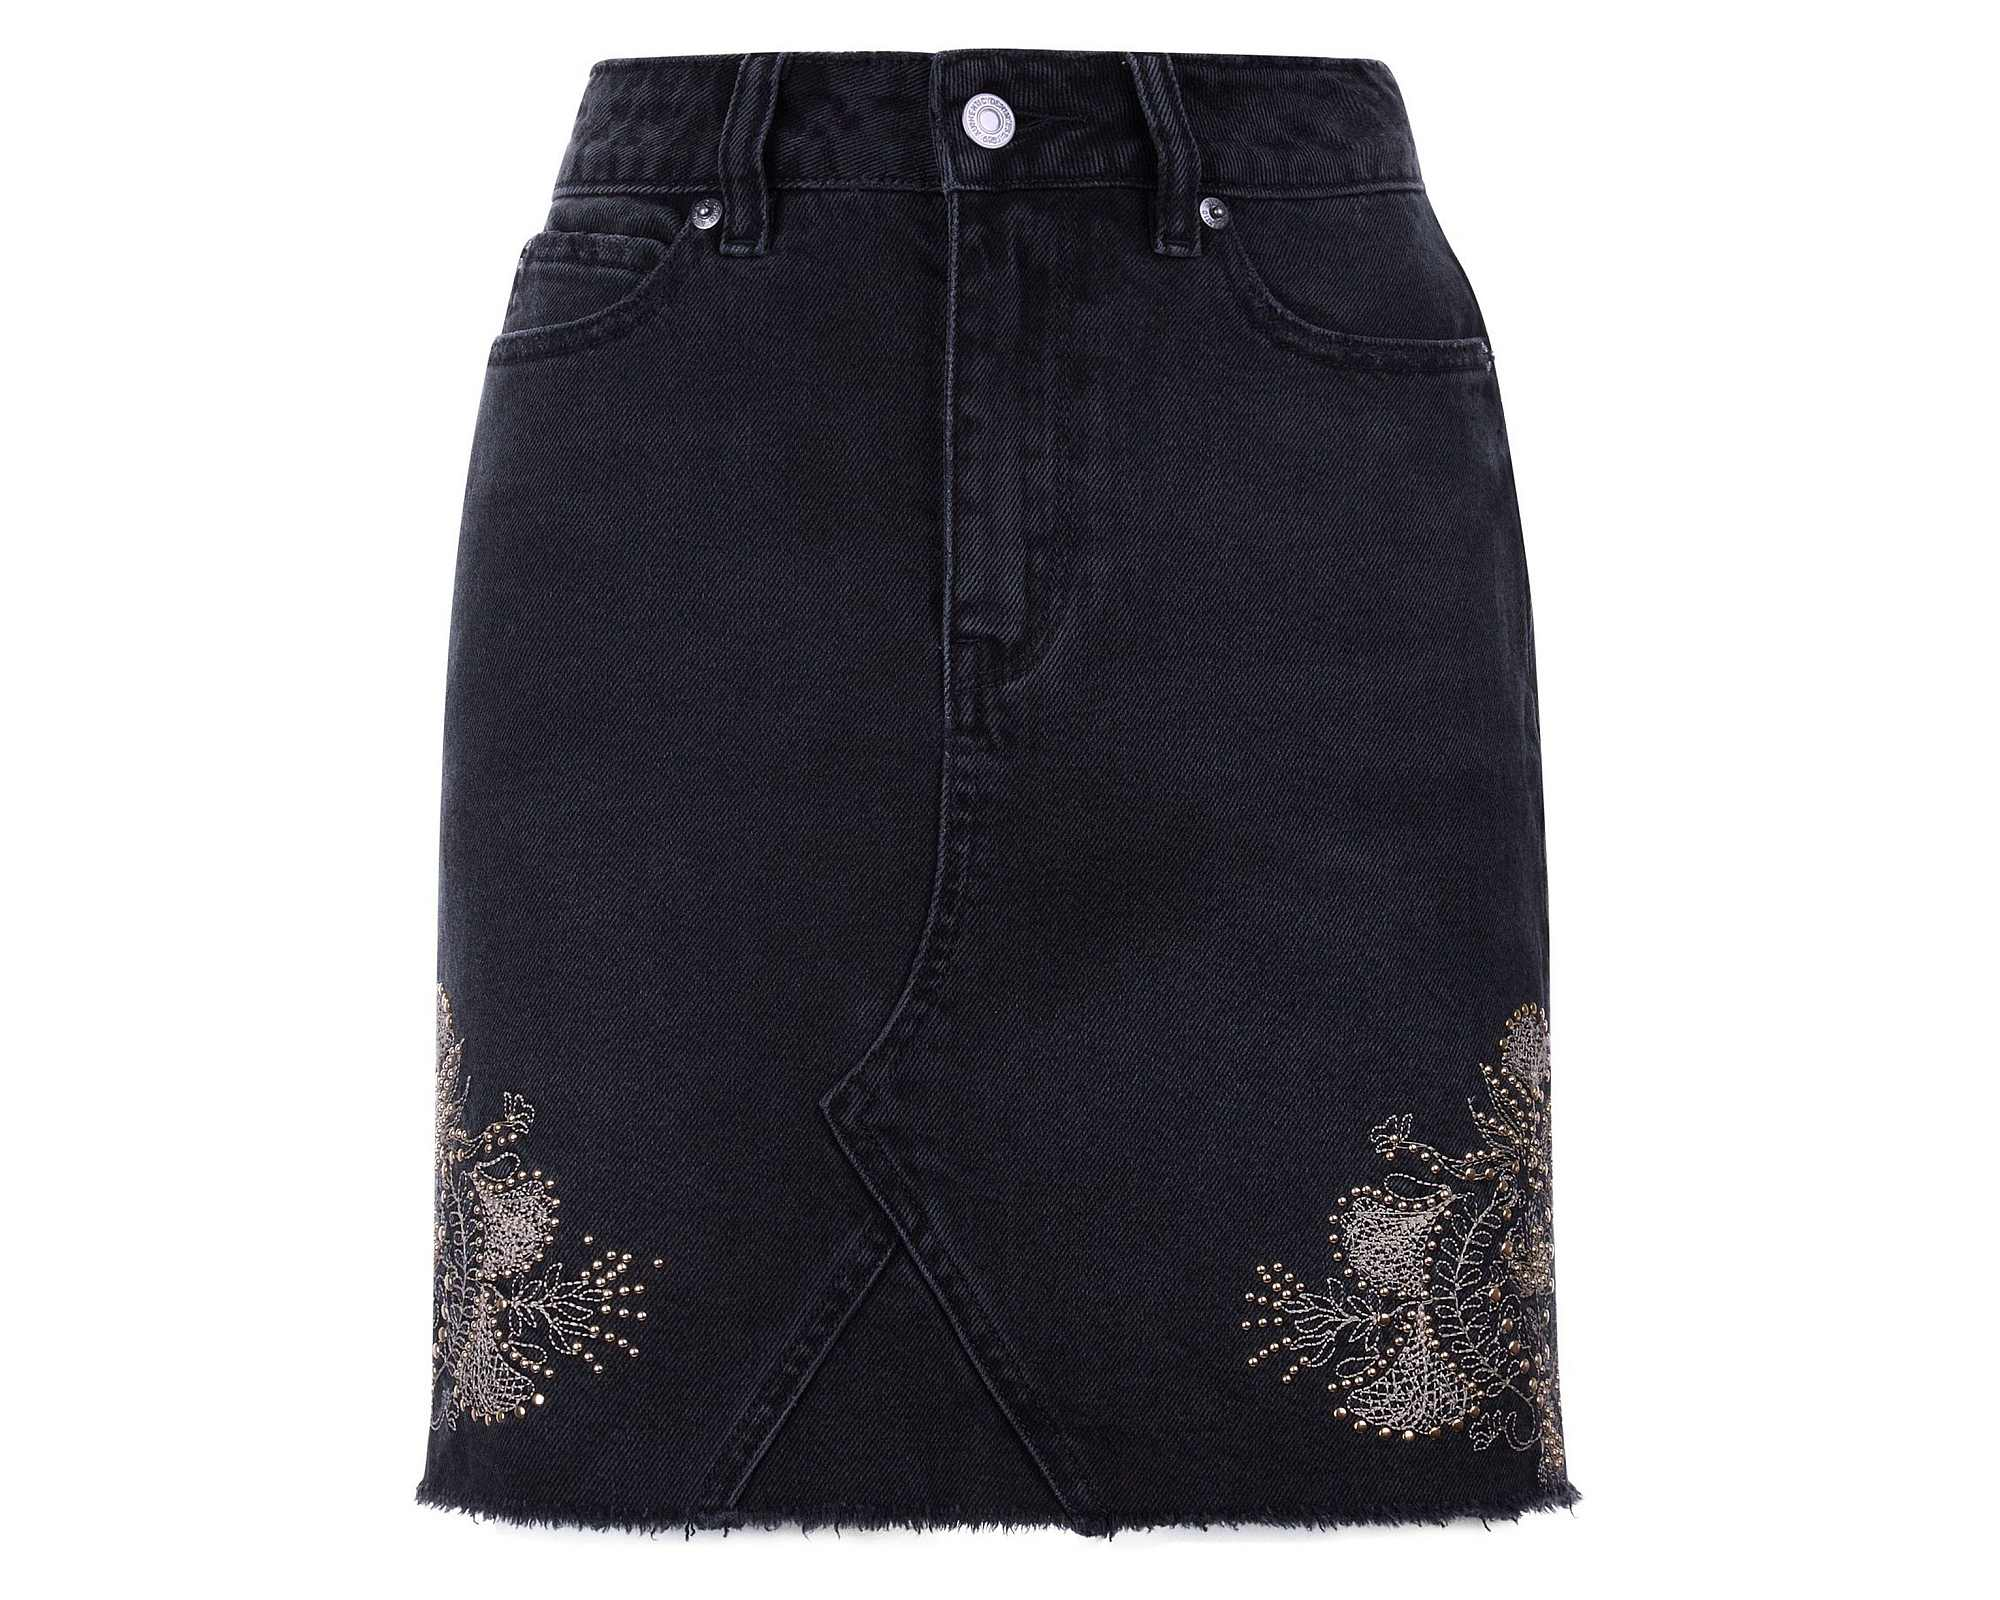 New Look Black Stud Embroidered High Waist Denim Skirt